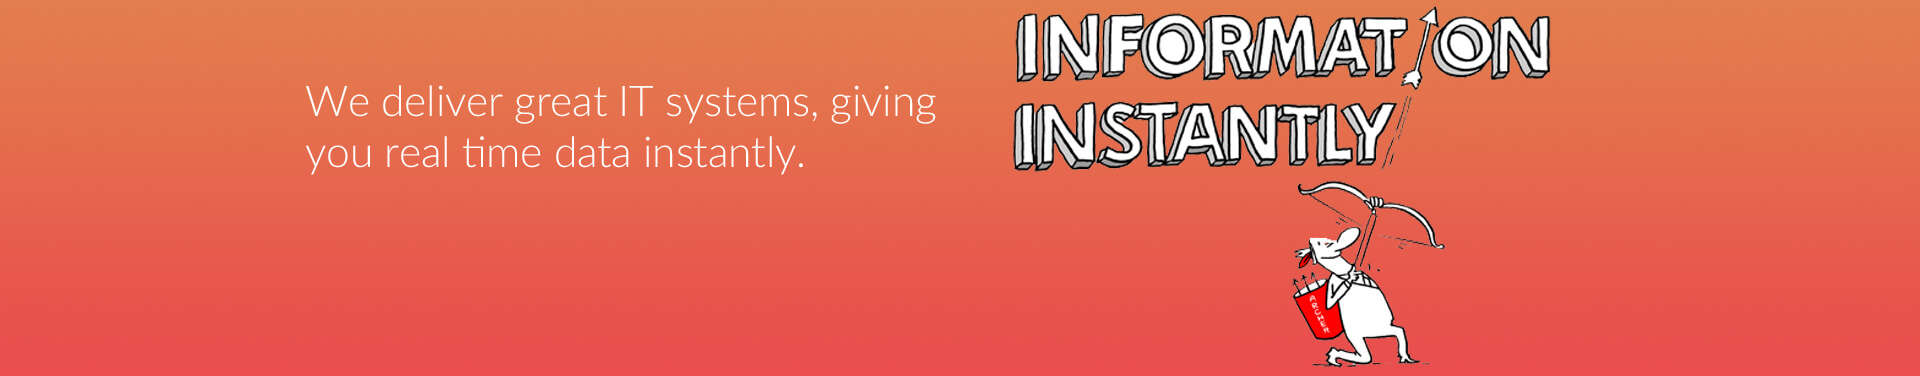 information instantly